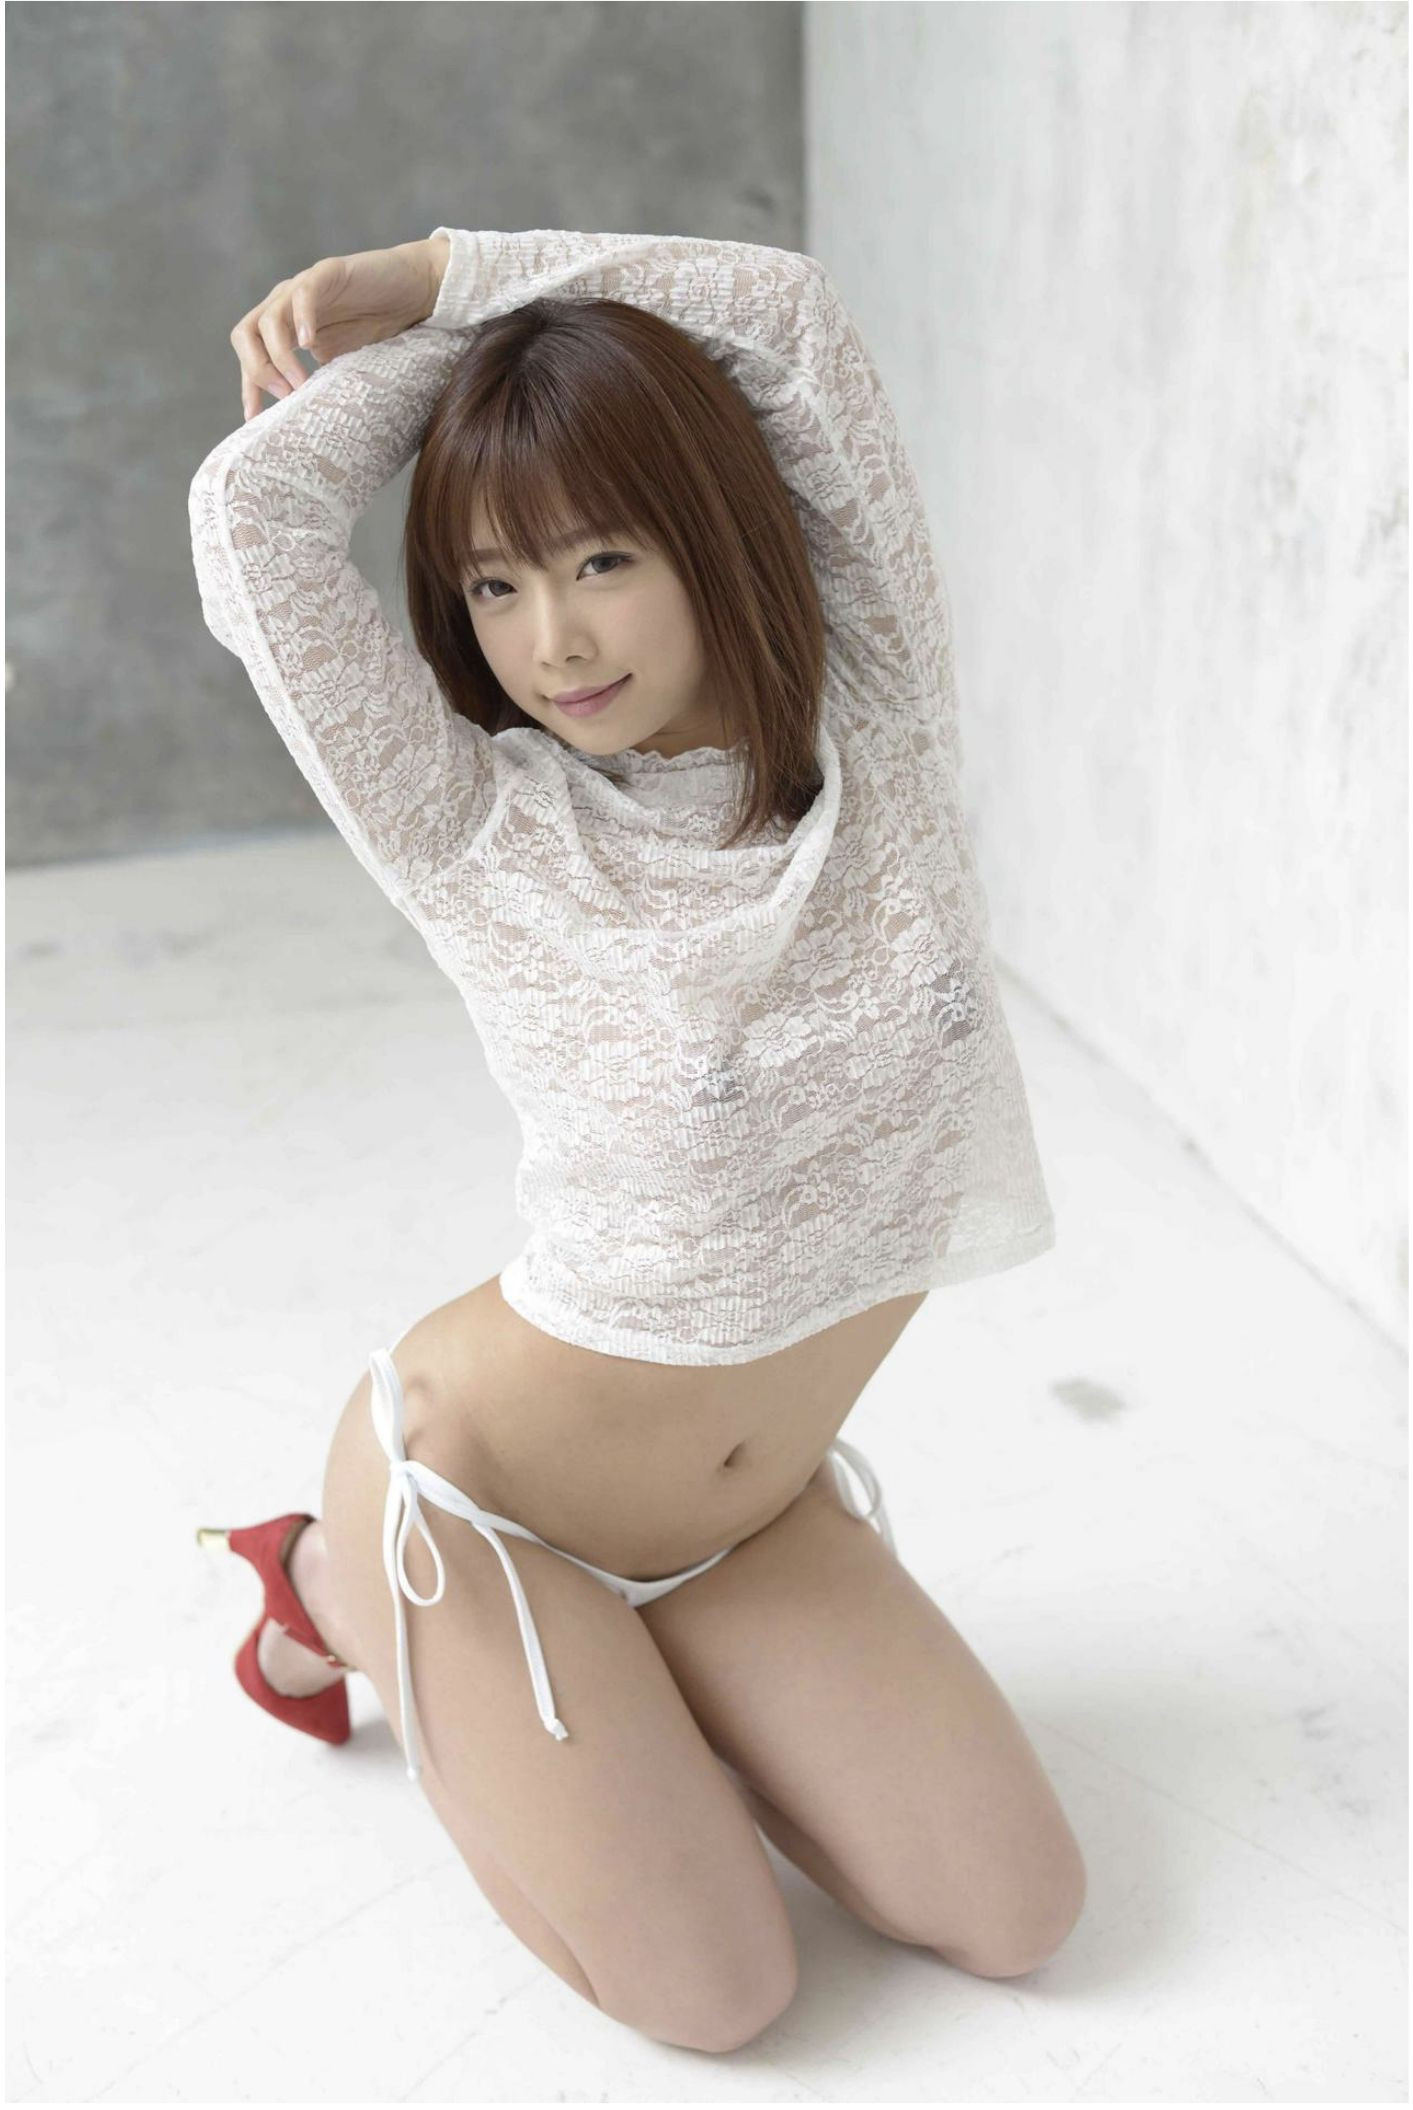 SOFT ON DEMAND GRAVURE COLLECTION 紗倉まな04 photo 039